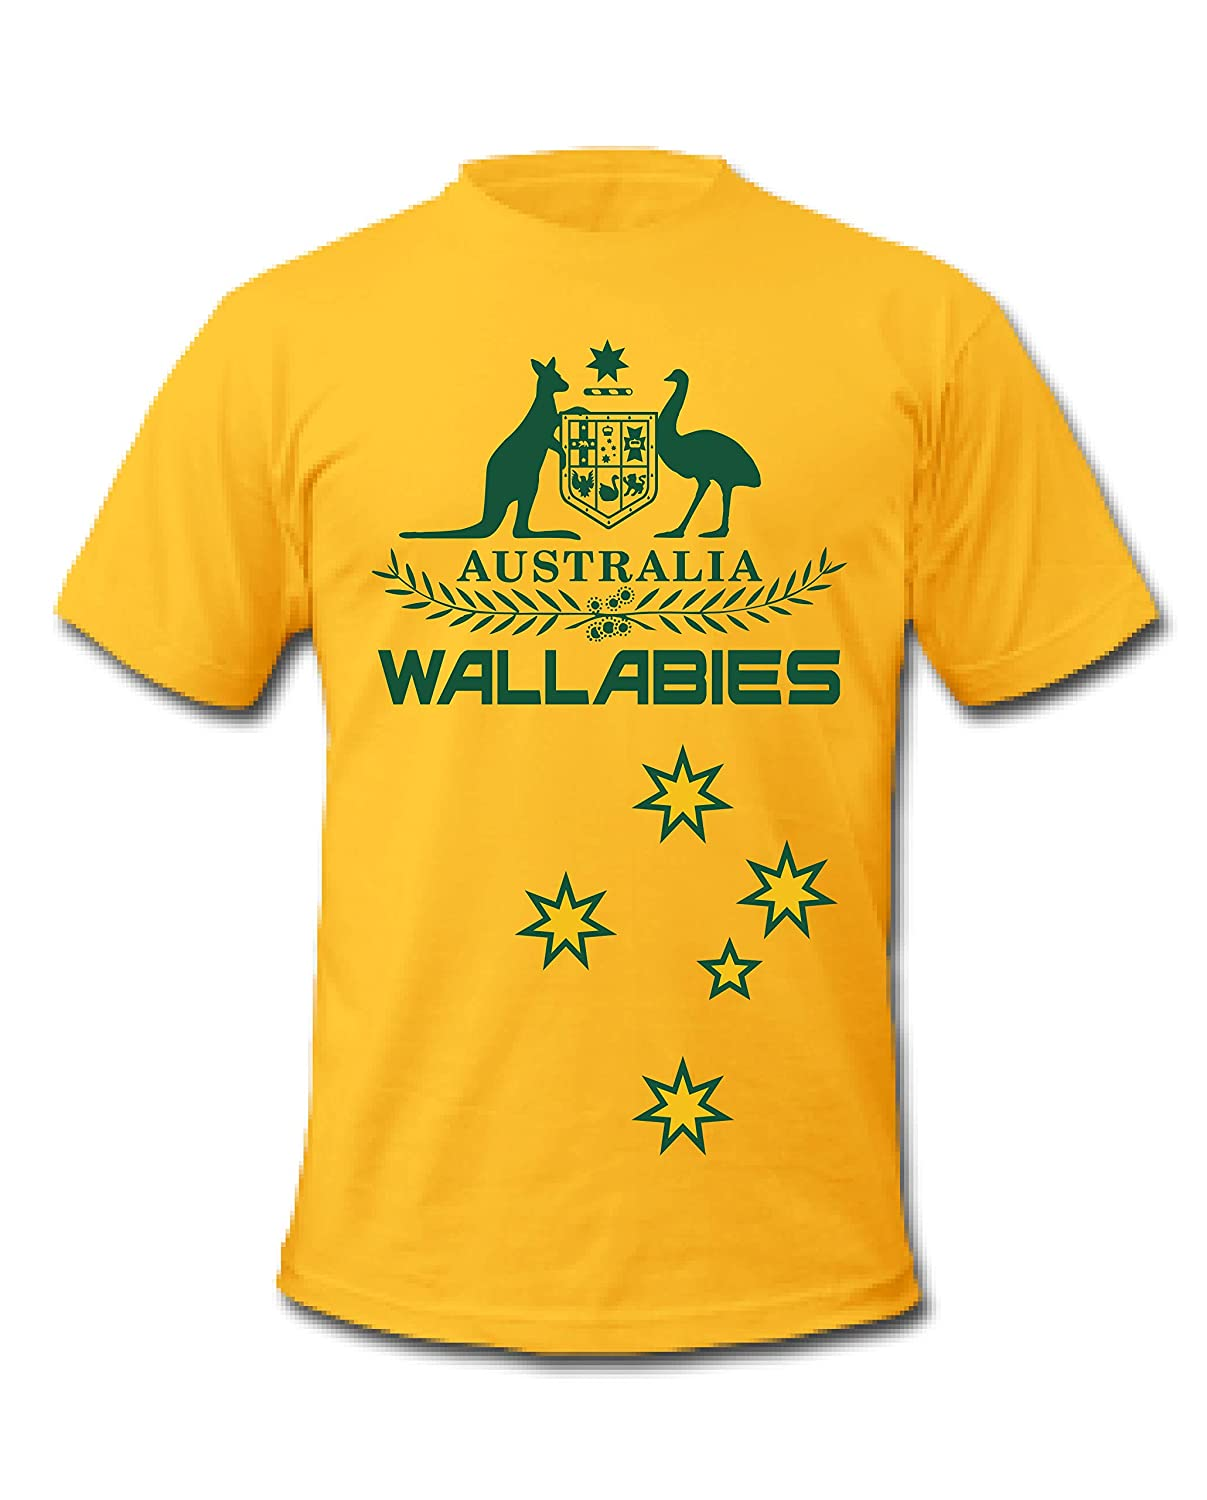 Wallabies Rugby World Cup Japan 2019 Australian Coat of Arms T-Shirts Yellow